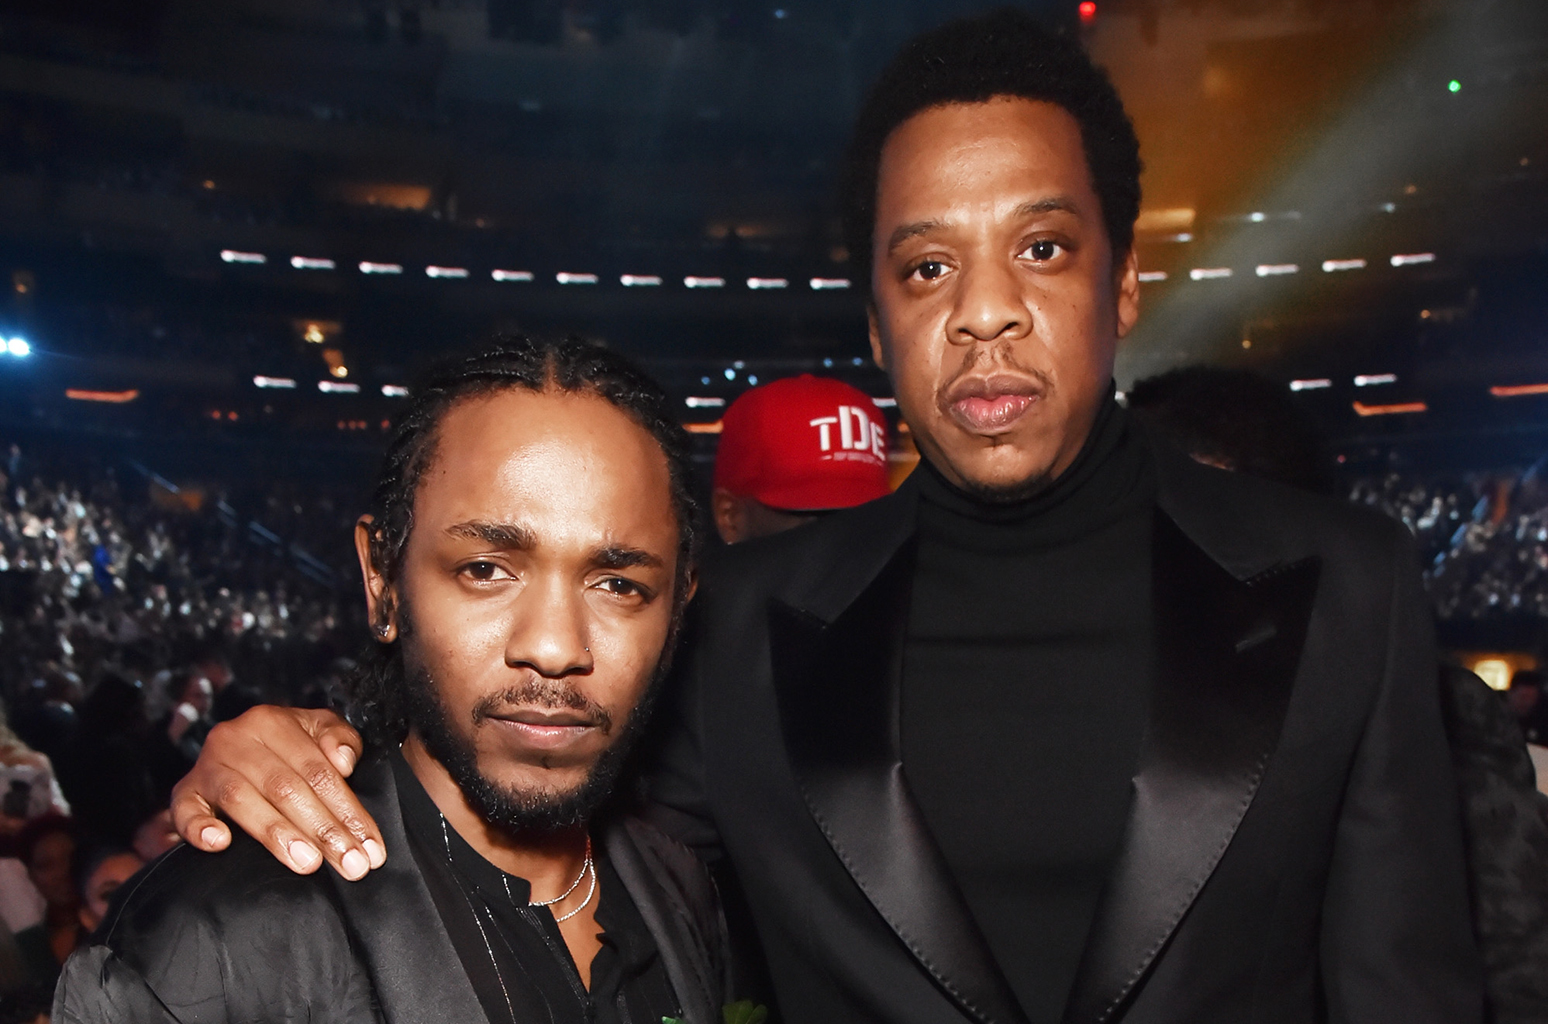 hip hop Here Are The World's Highest-Paid Hip Hop Acts In 2018 JAY Z Kendrick Lamar grammys 2018 billboard 1548